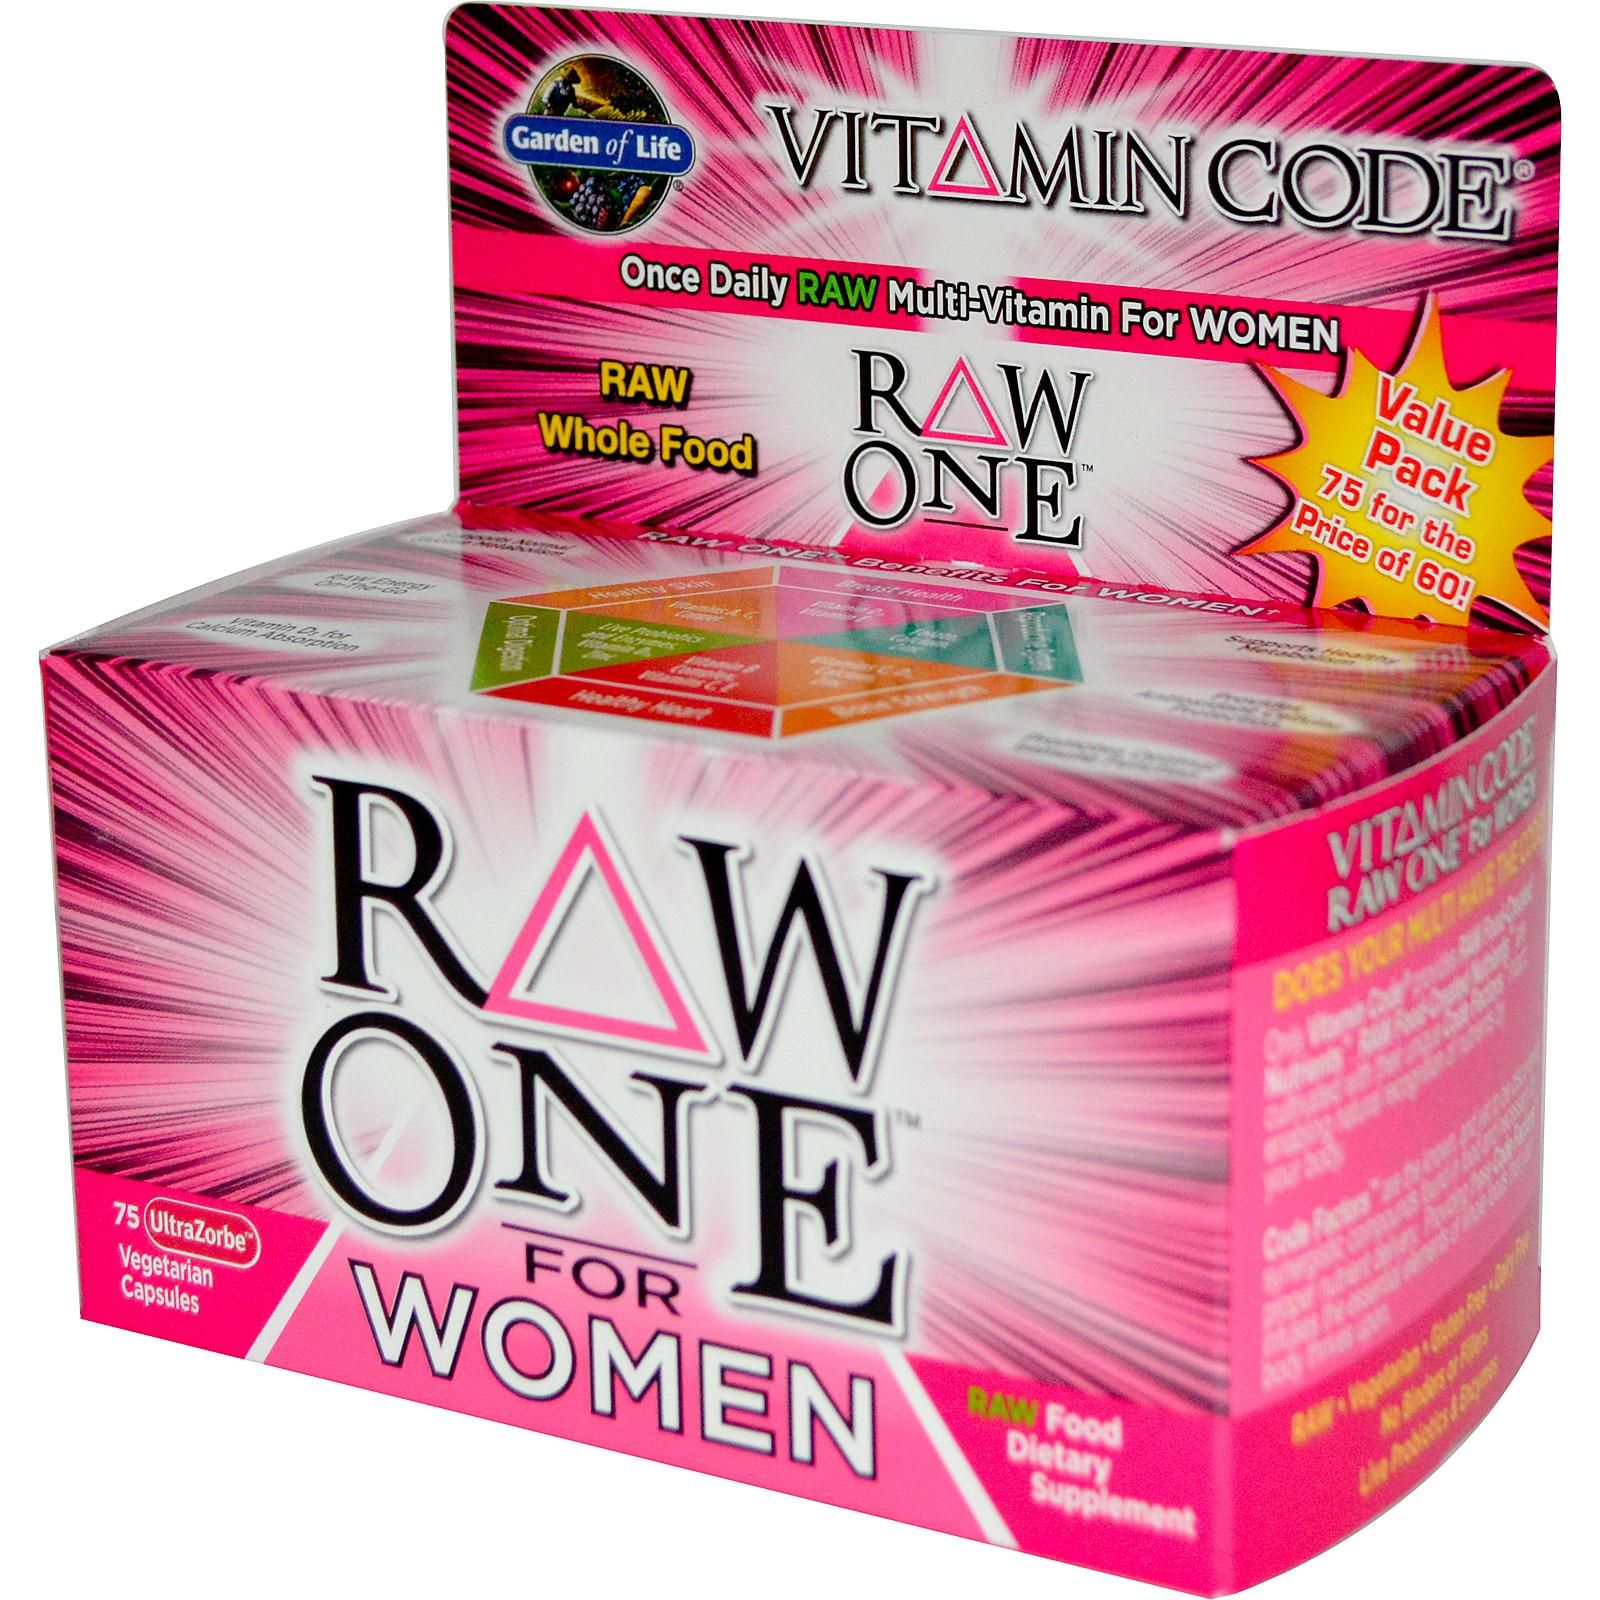 Garden Of Life Vitamin Code Raw One Once Daily Multivitamin For Women 75 Vegetarian Capsules Vitamins For Women Vitamins Multivitamin